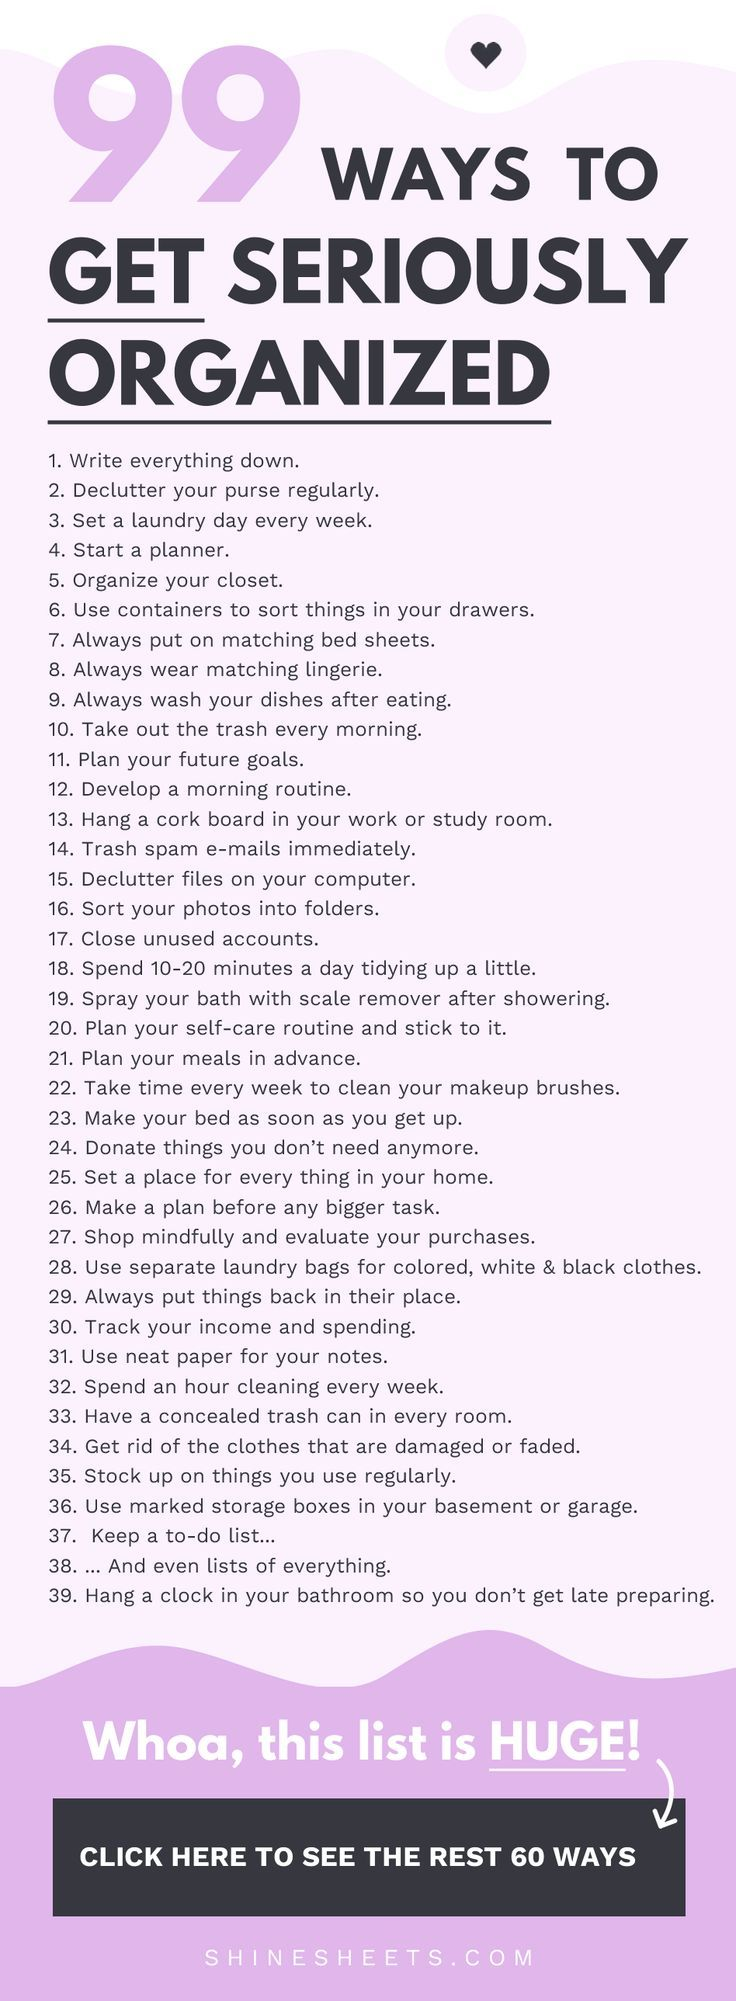 99 Ways To Get Seriously Organized Get a list of 99 tips that will help you organize your life, goals, work, and surroundings. Hint - they're easy and non-overwhelming! |  | Personal development, Self Improvement, Organization, Get organized, Life organizing, How to organize your life, Growth Mindset, Self-help, Mental health, Planning, Declutter, Motivation, Inspiration, Goal setting, Stress control, Wellbeing, Stop procrastination, Get motivated, Planner, Decluttering tips, Minimalist